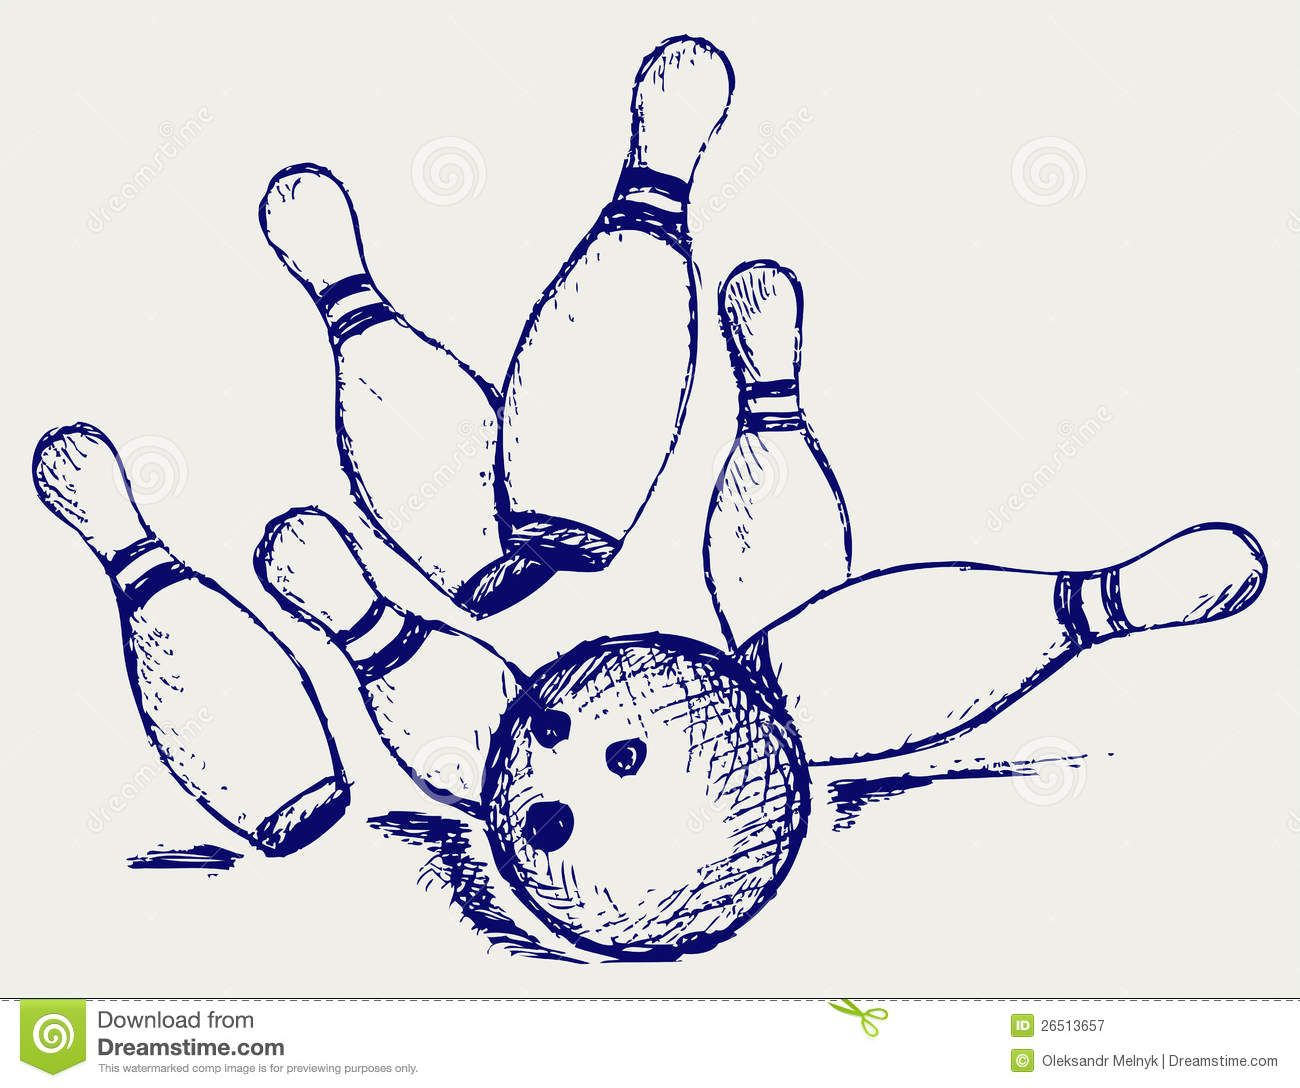 Bowling Ball And Pins Drawing Google Search Bowling Drawings Chicken And Shrimp Recipes